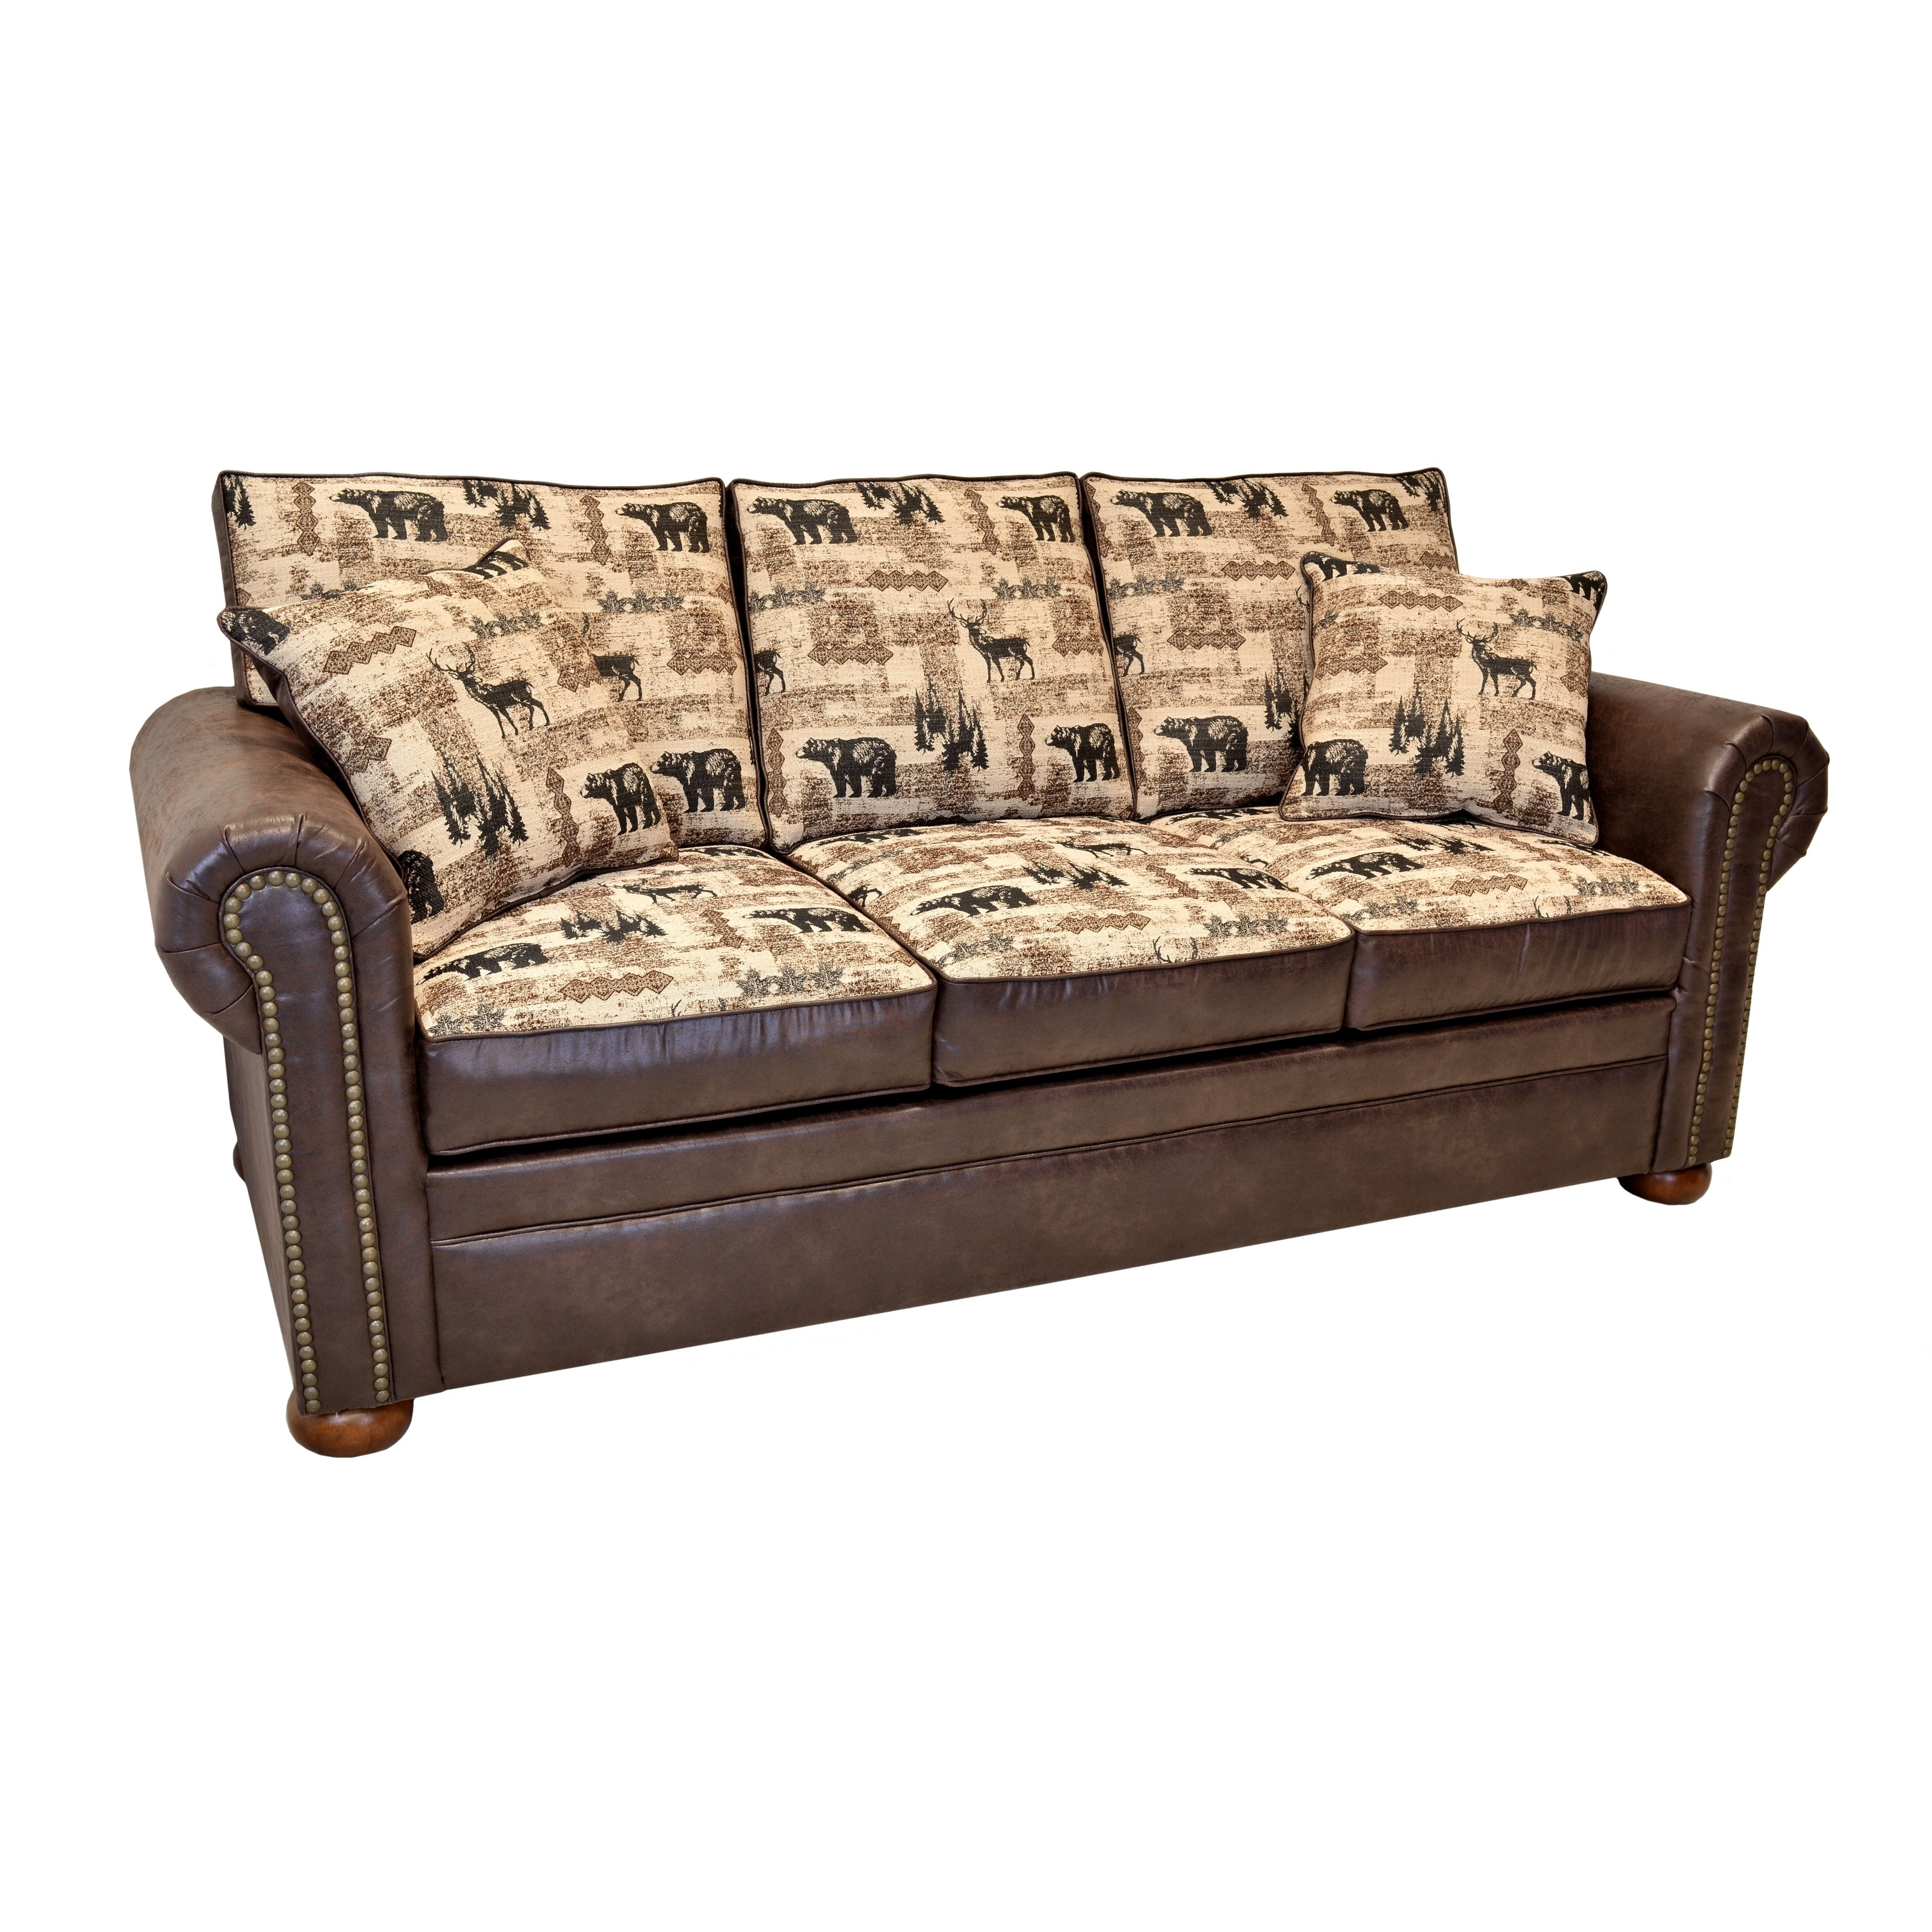 Redwood Contemporary Lodge Sleeper Sofa